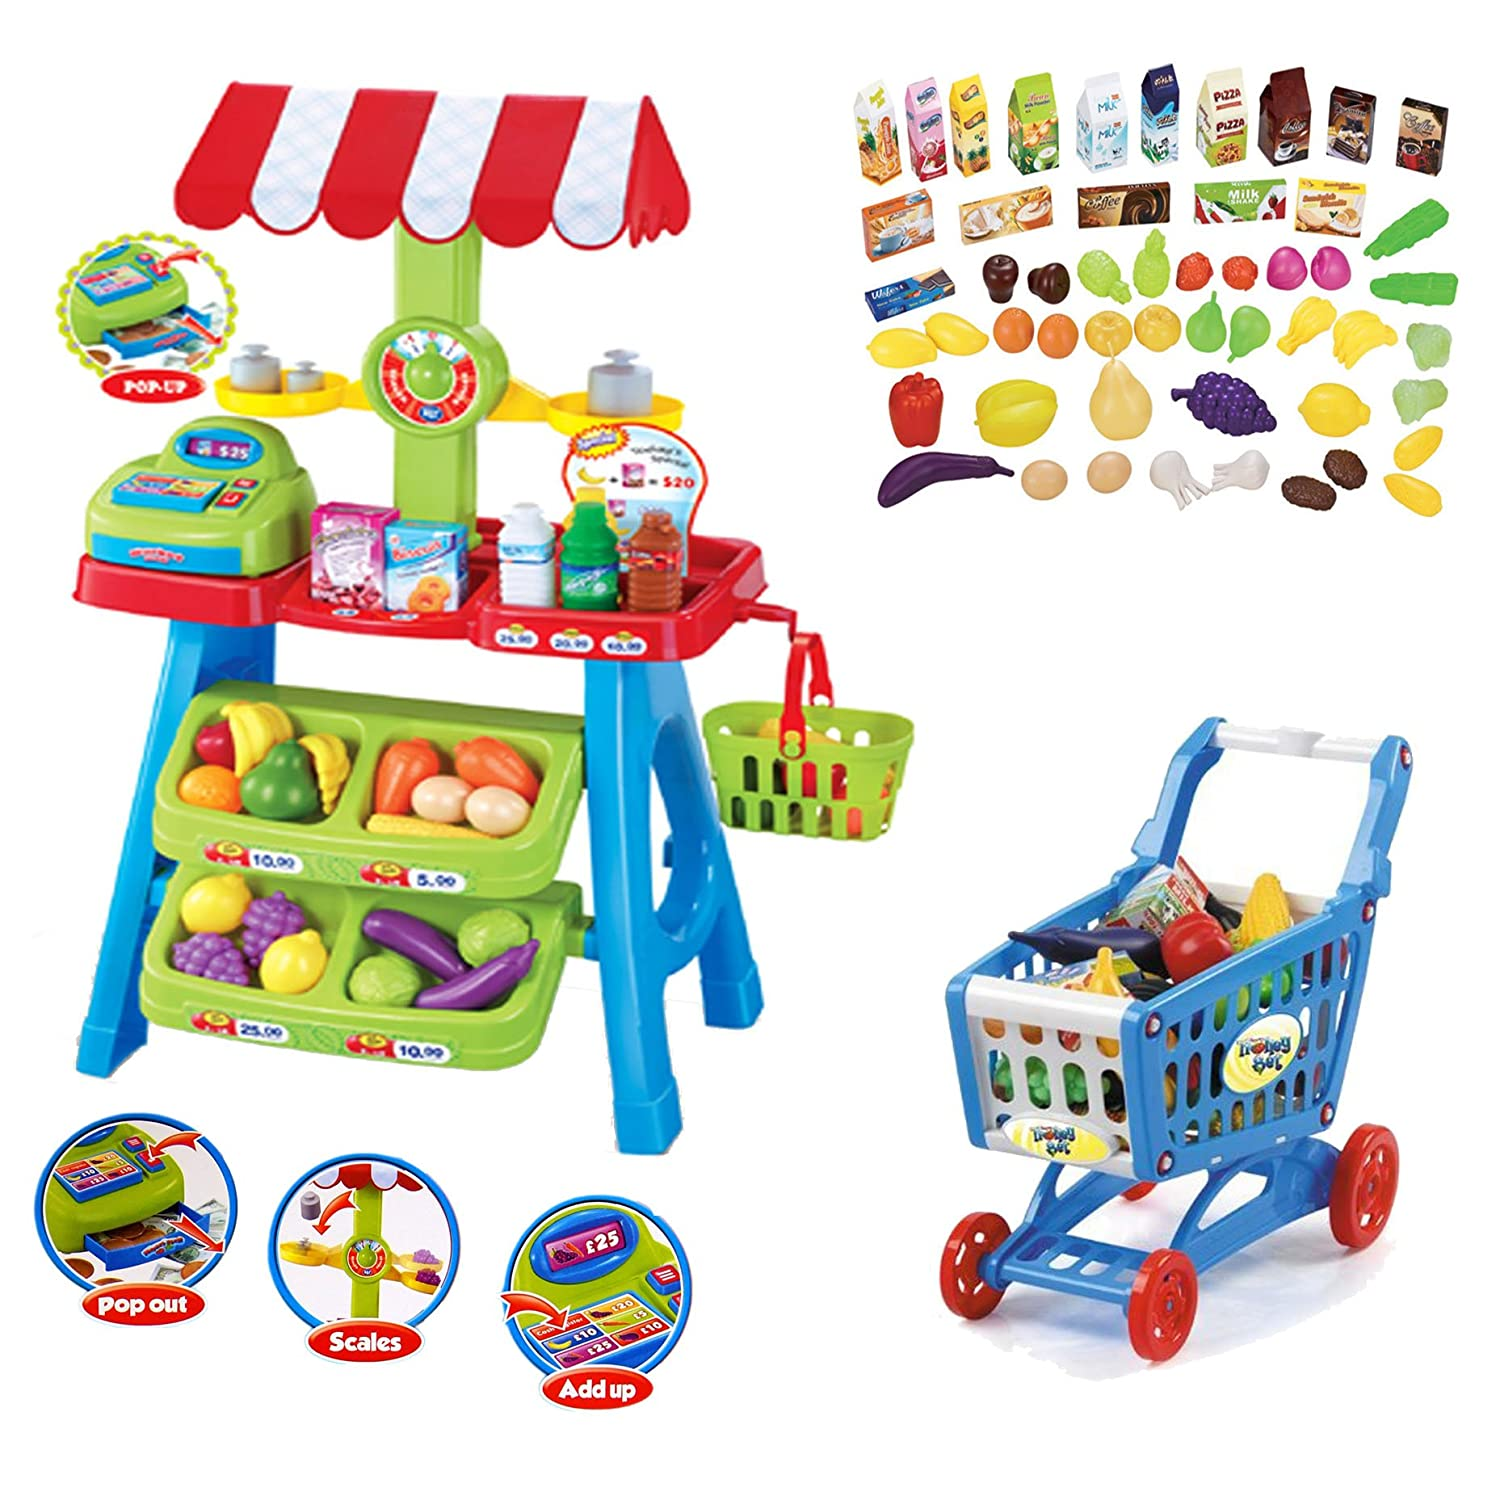 deAO Kids Market Stall Toy Shop With Shopping Trolley And Play